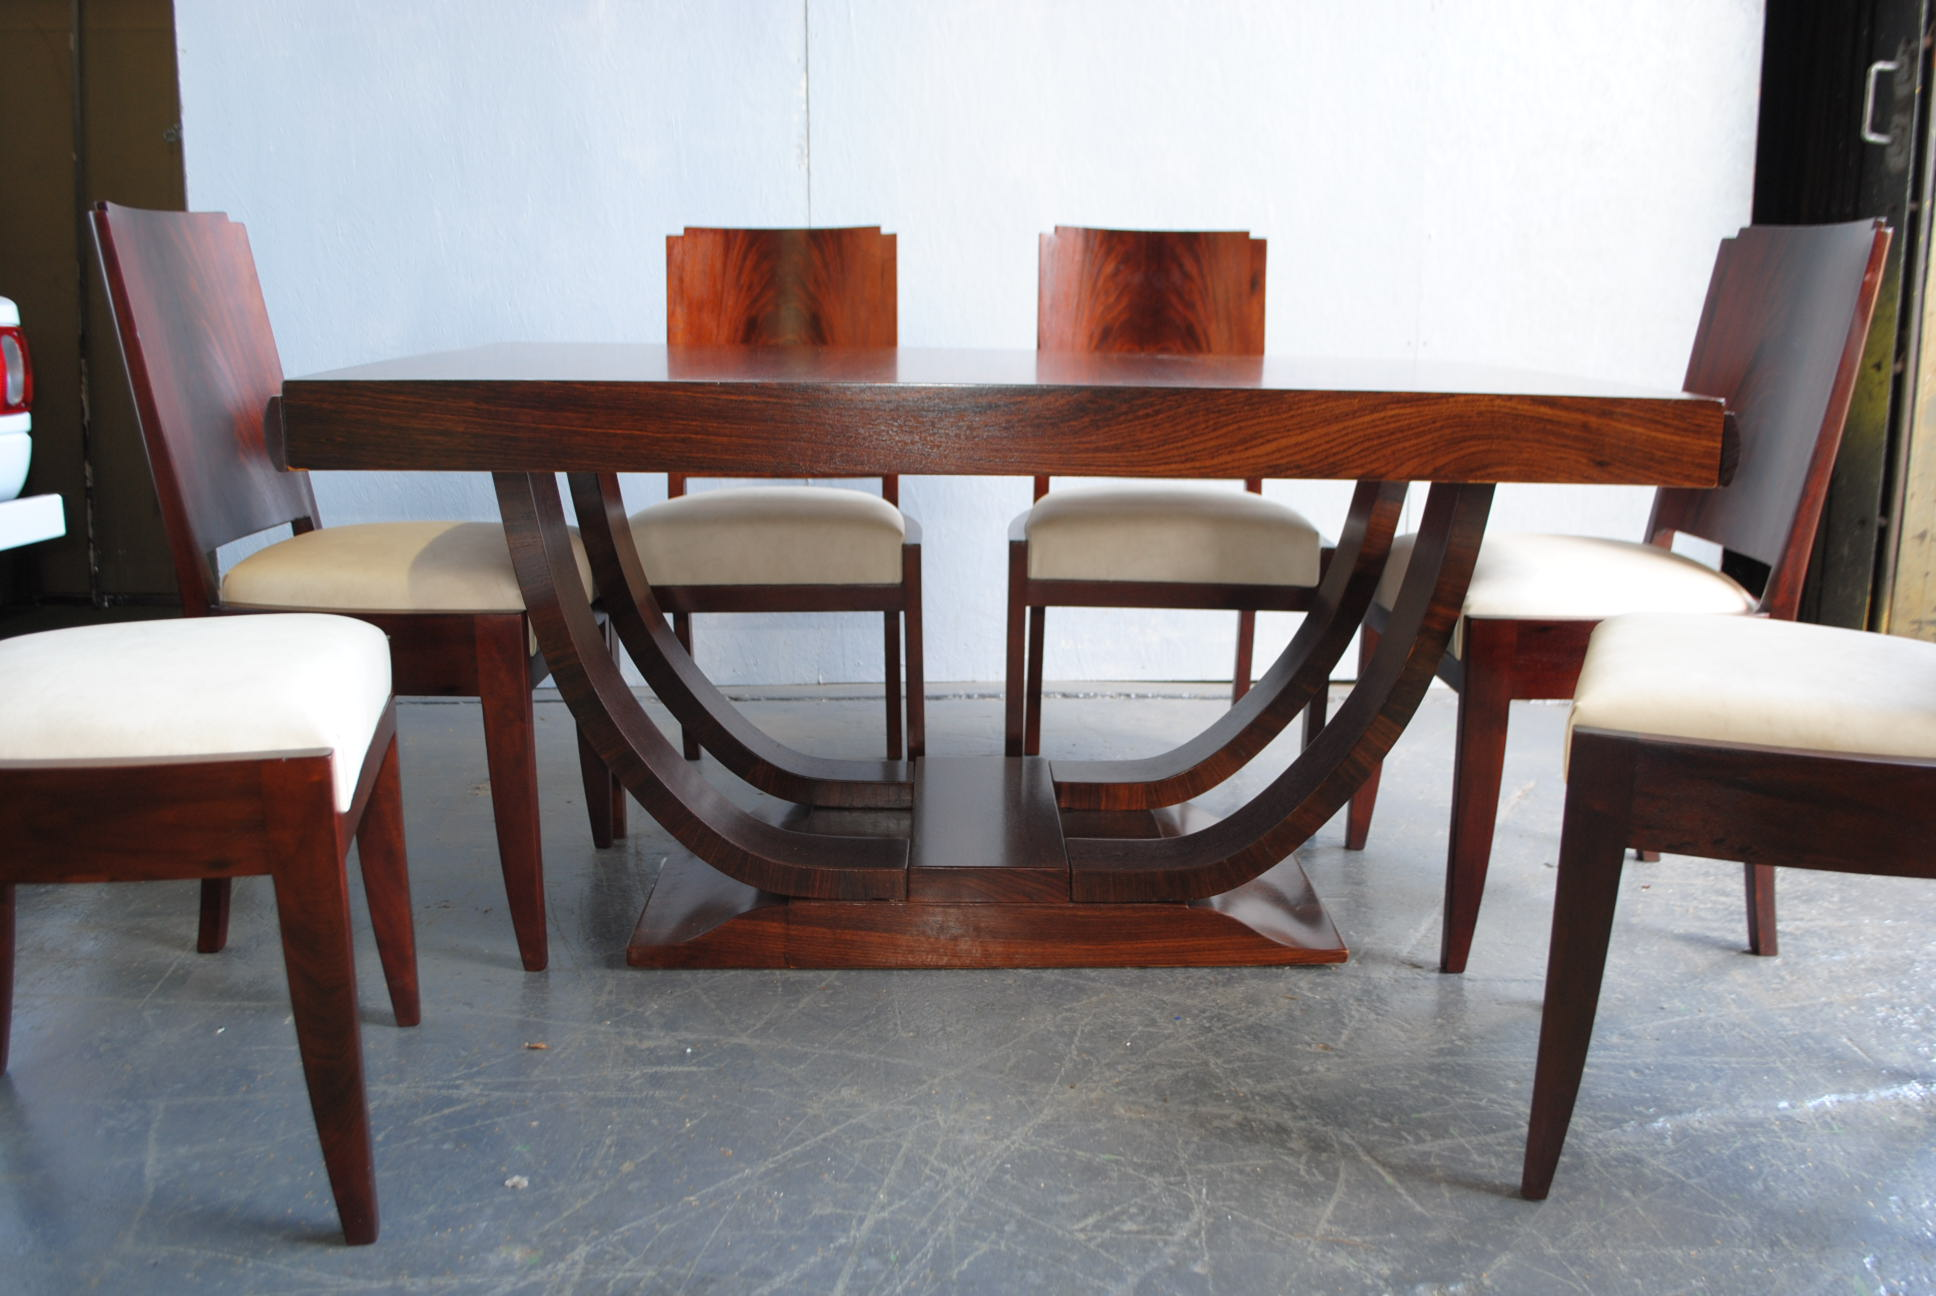 1940 art deco whiten oak dining room table for sale at for Dining room paintings sale